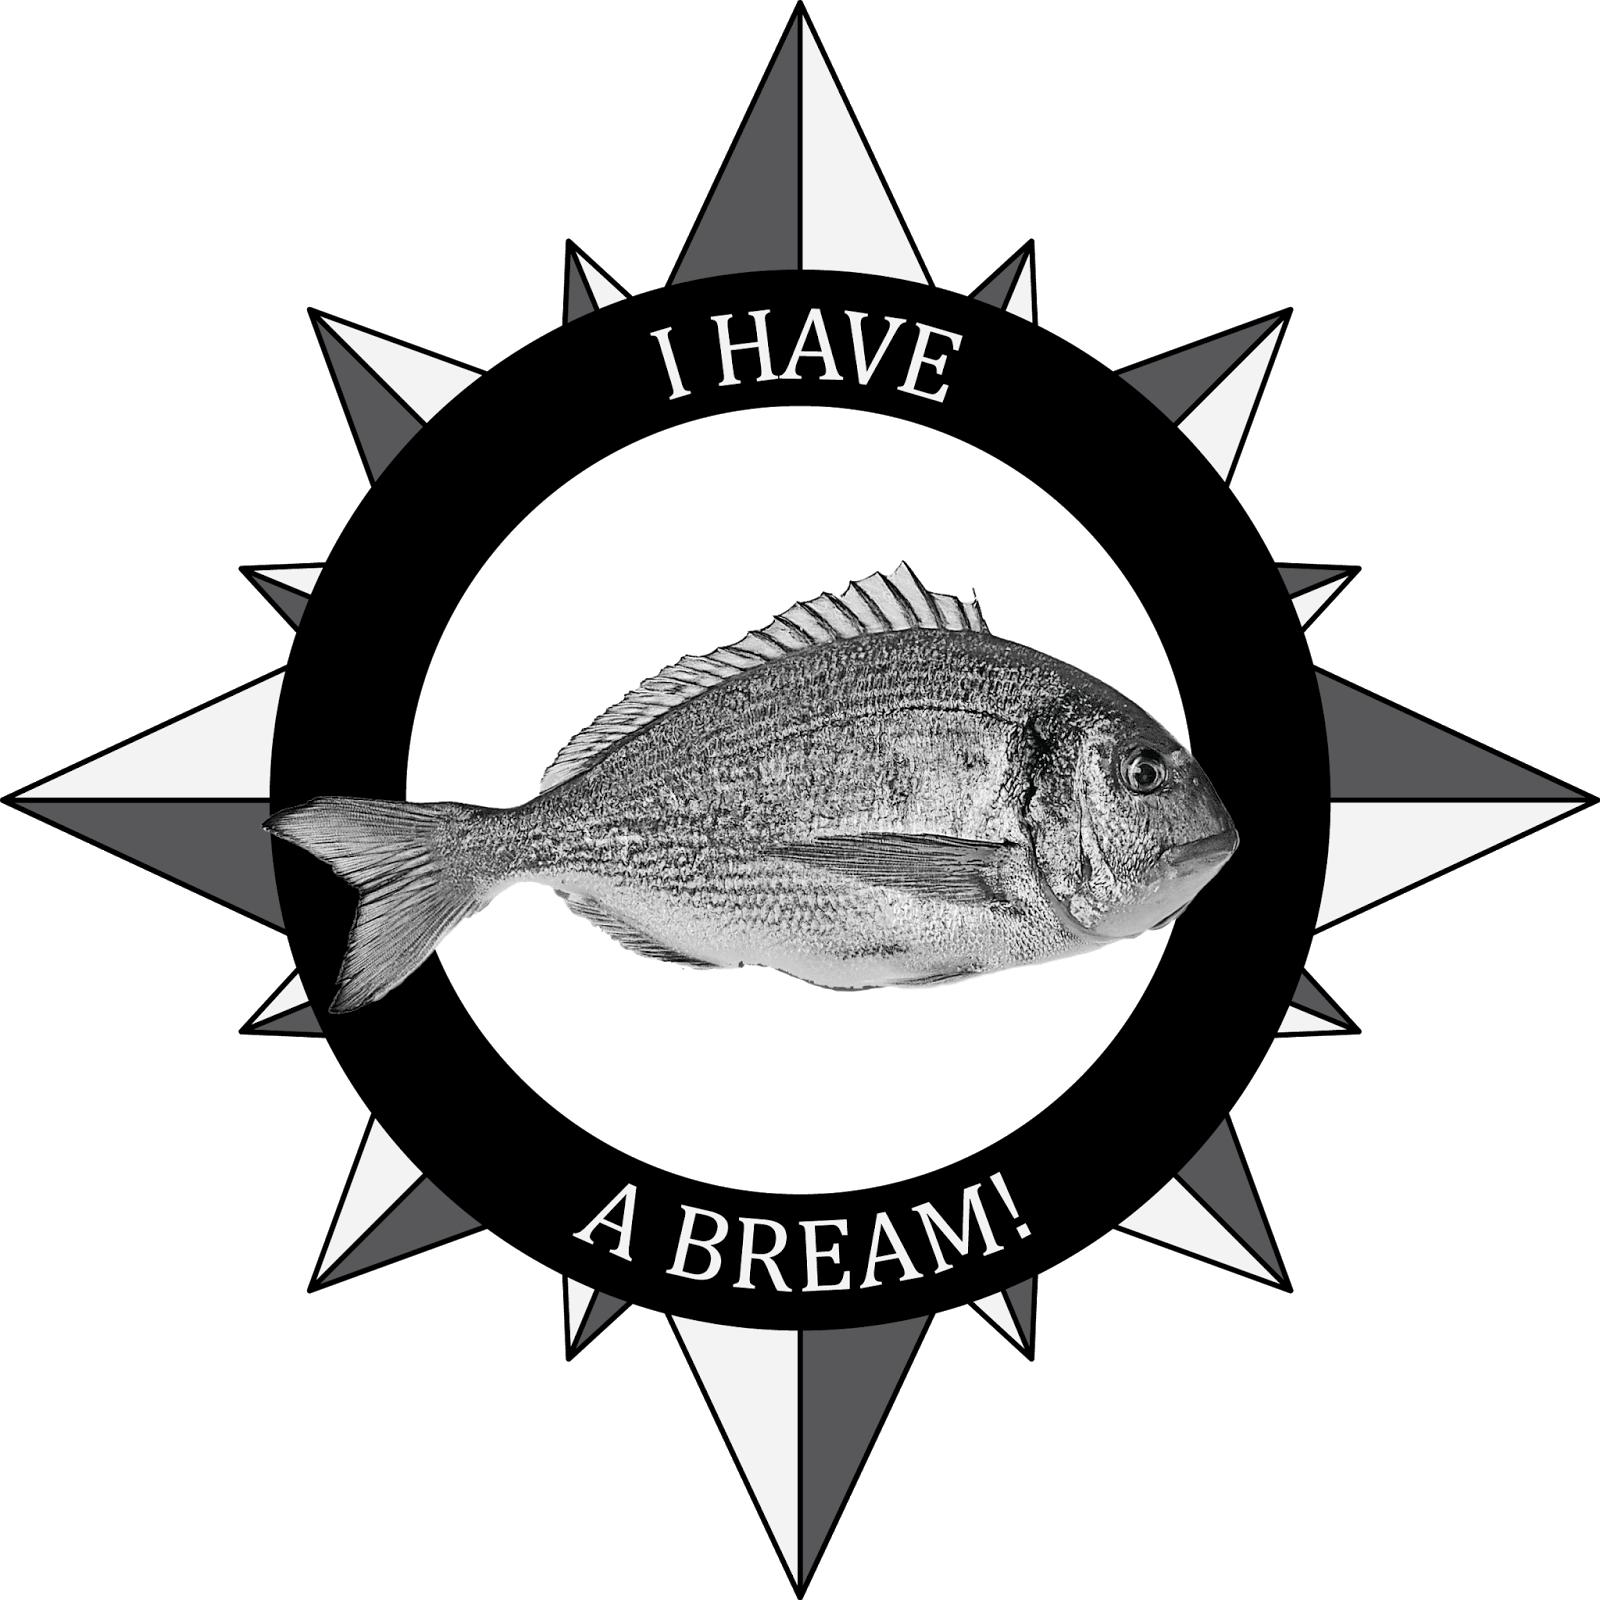 Brim fish black and white clipart graphic download ClubOrlov: Of Dunces, Fools, Drones and Heroes graphic download